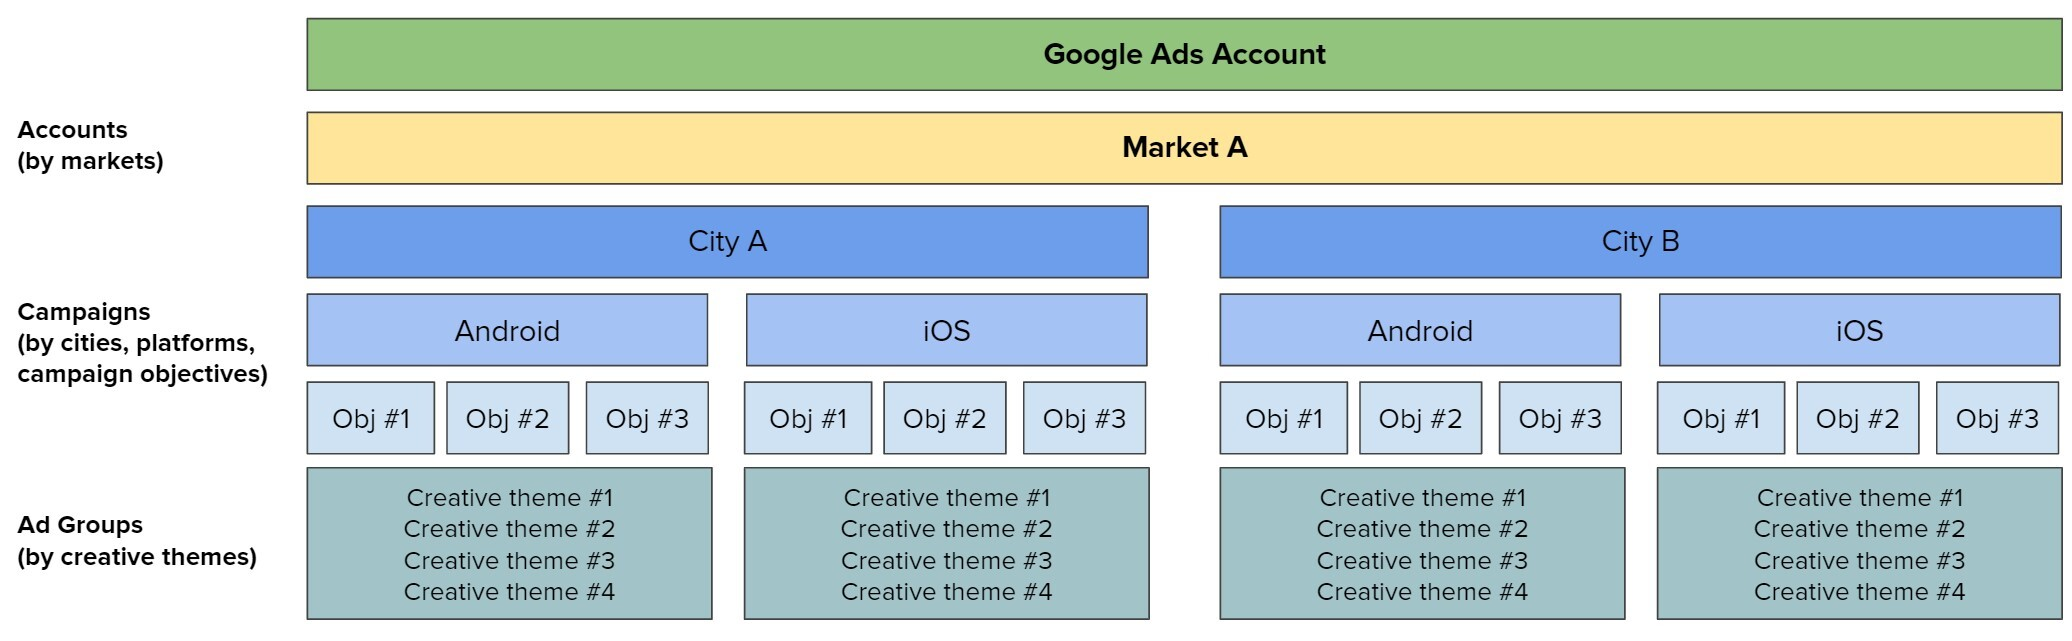 Sample Google Ads account structure